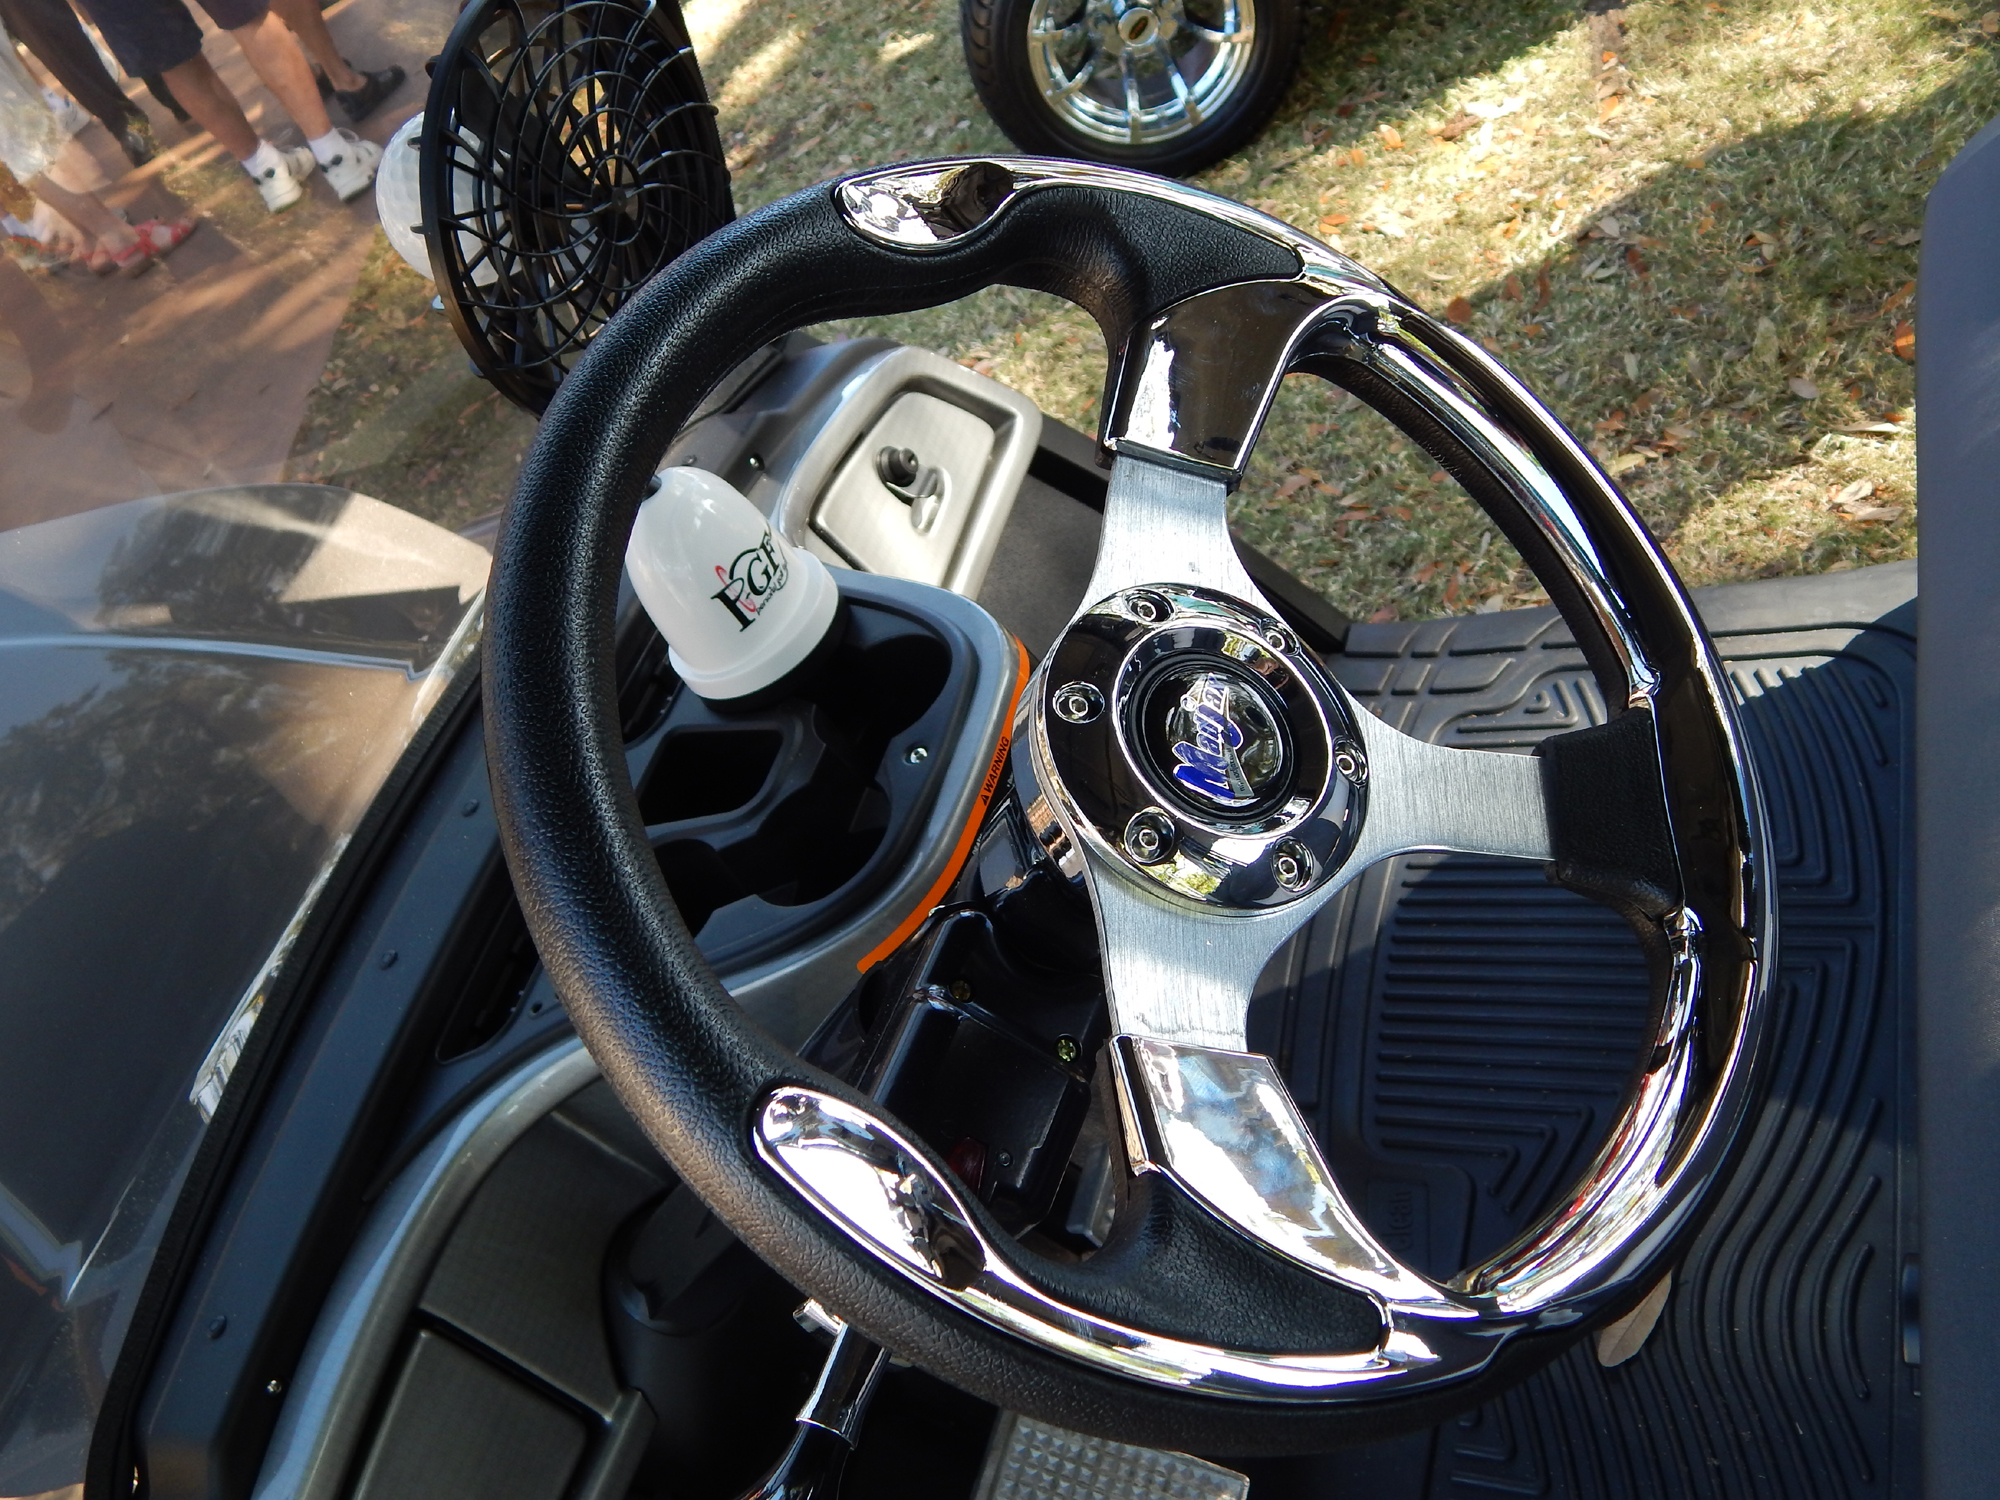 2014 Yamaha Golf Cart with customized front end $13,000